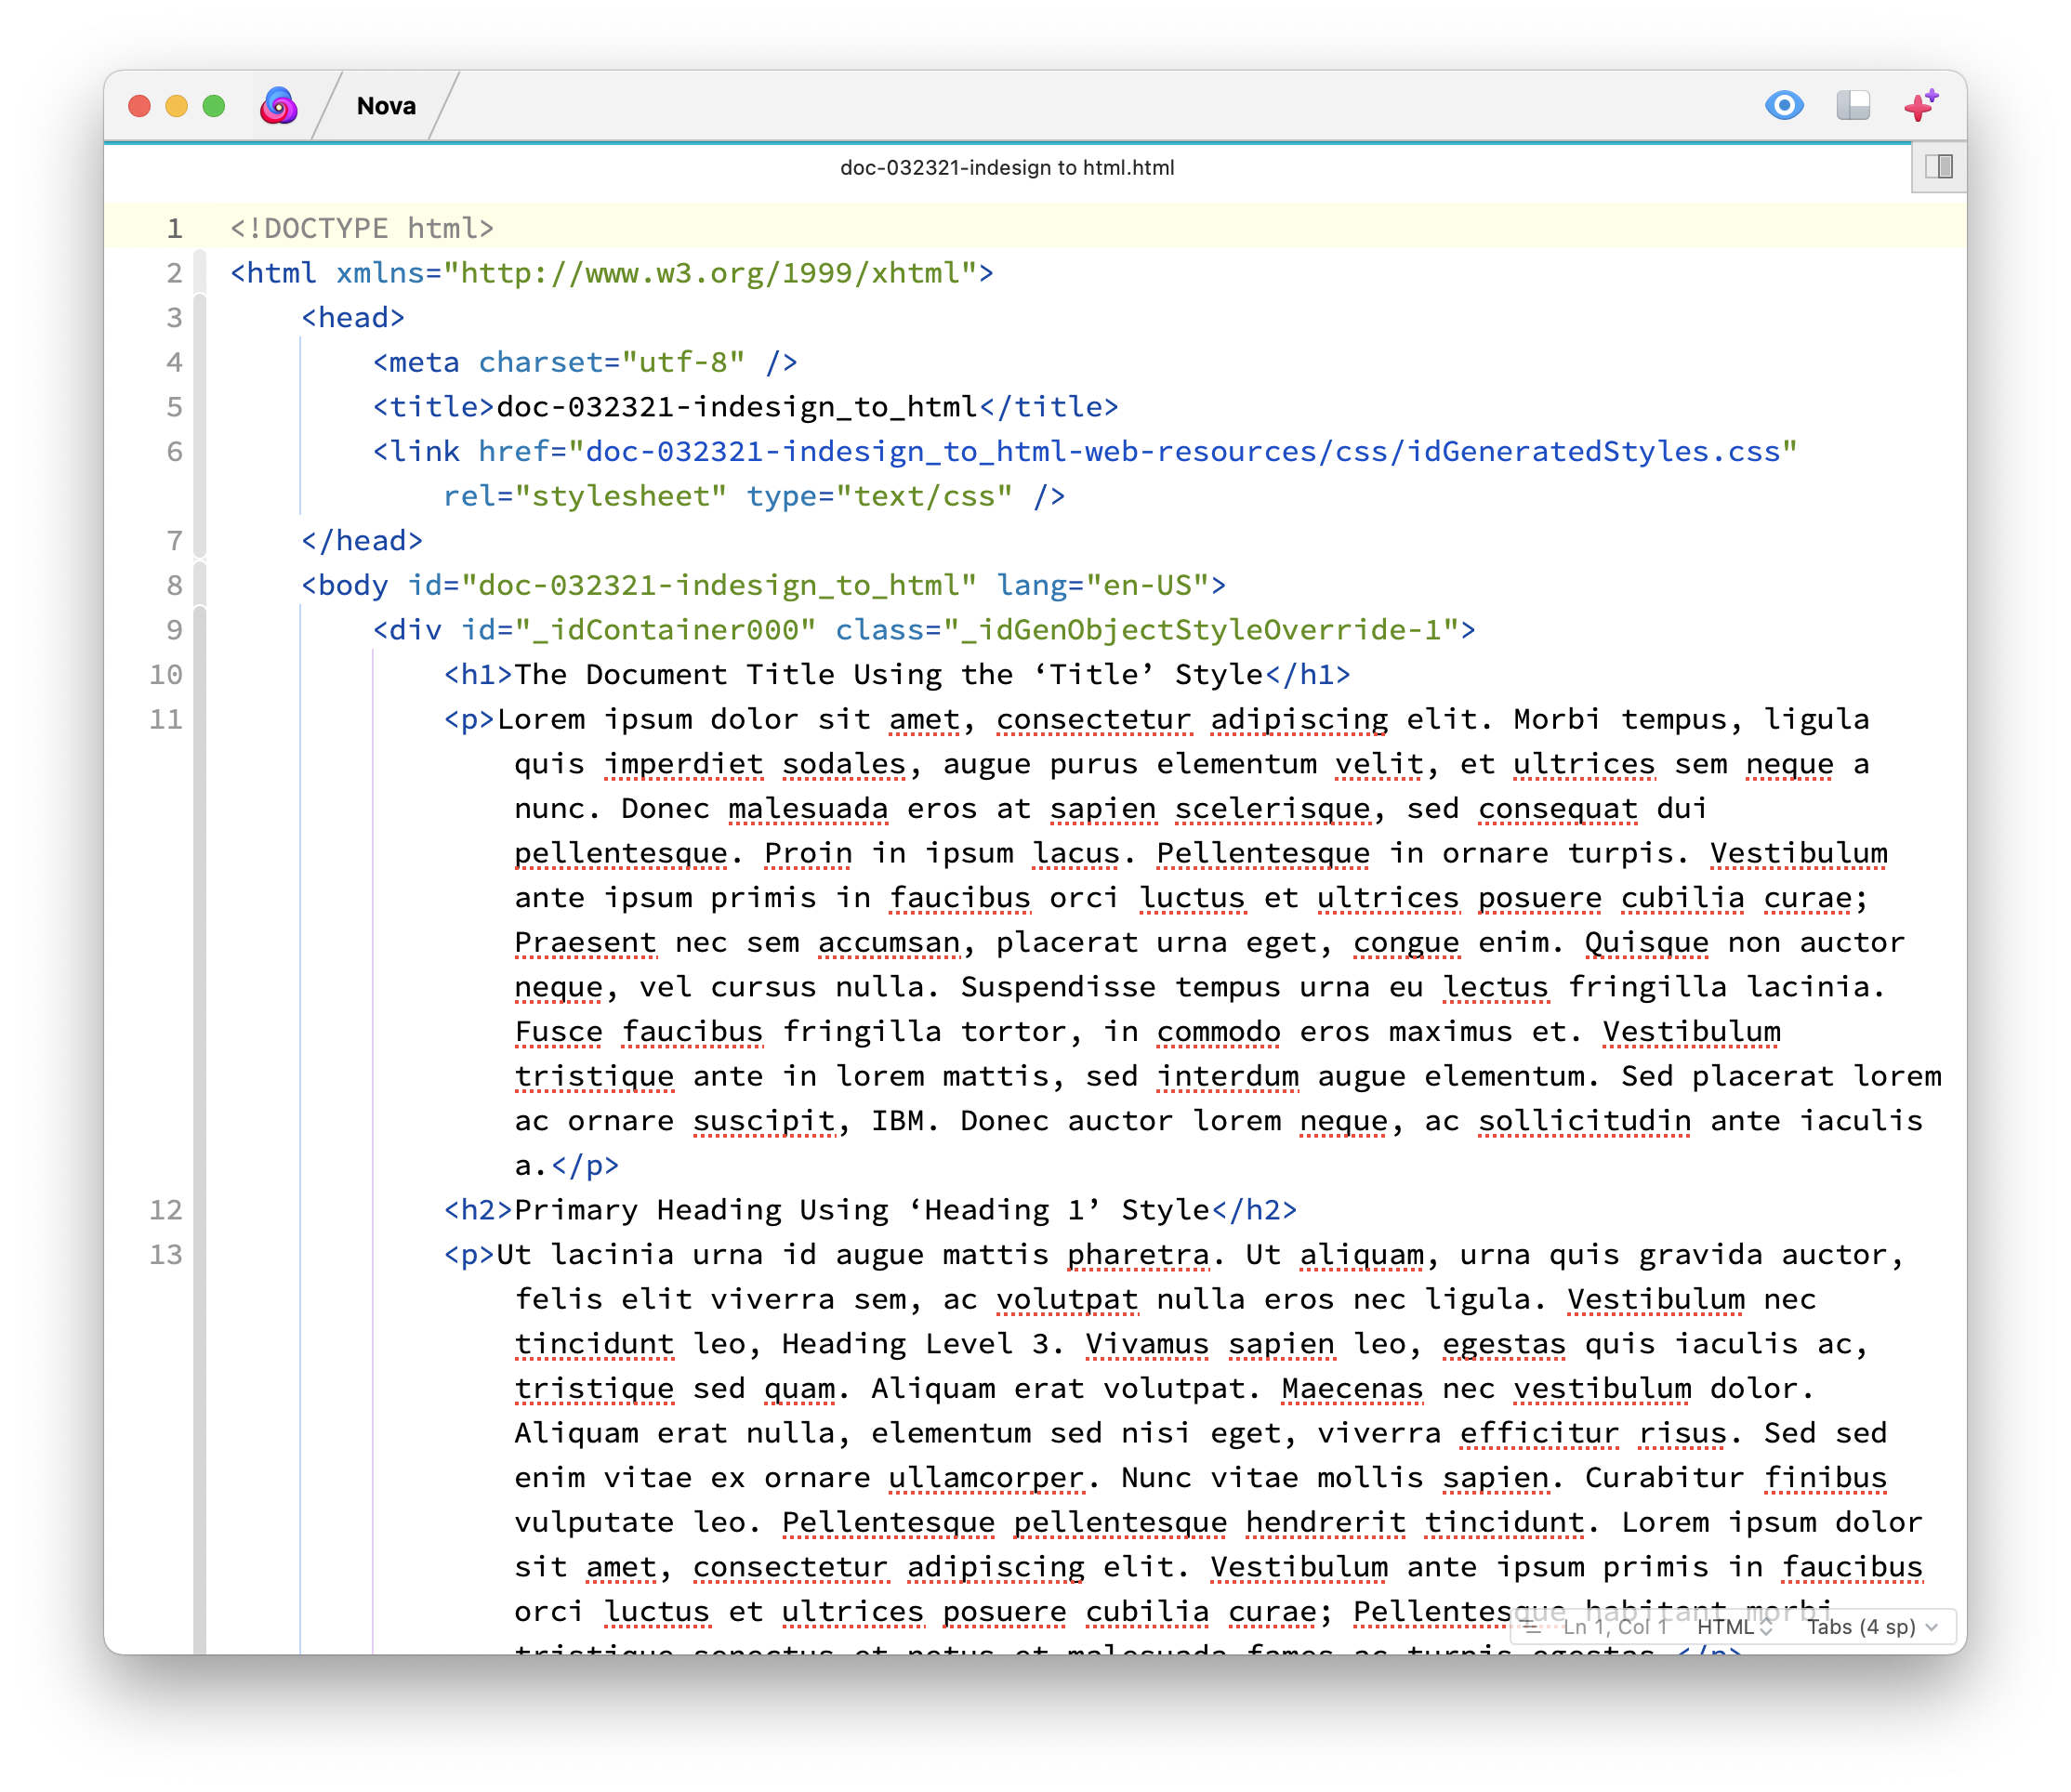 The first HTML export in Nova, my favorite code editor for the Mac.